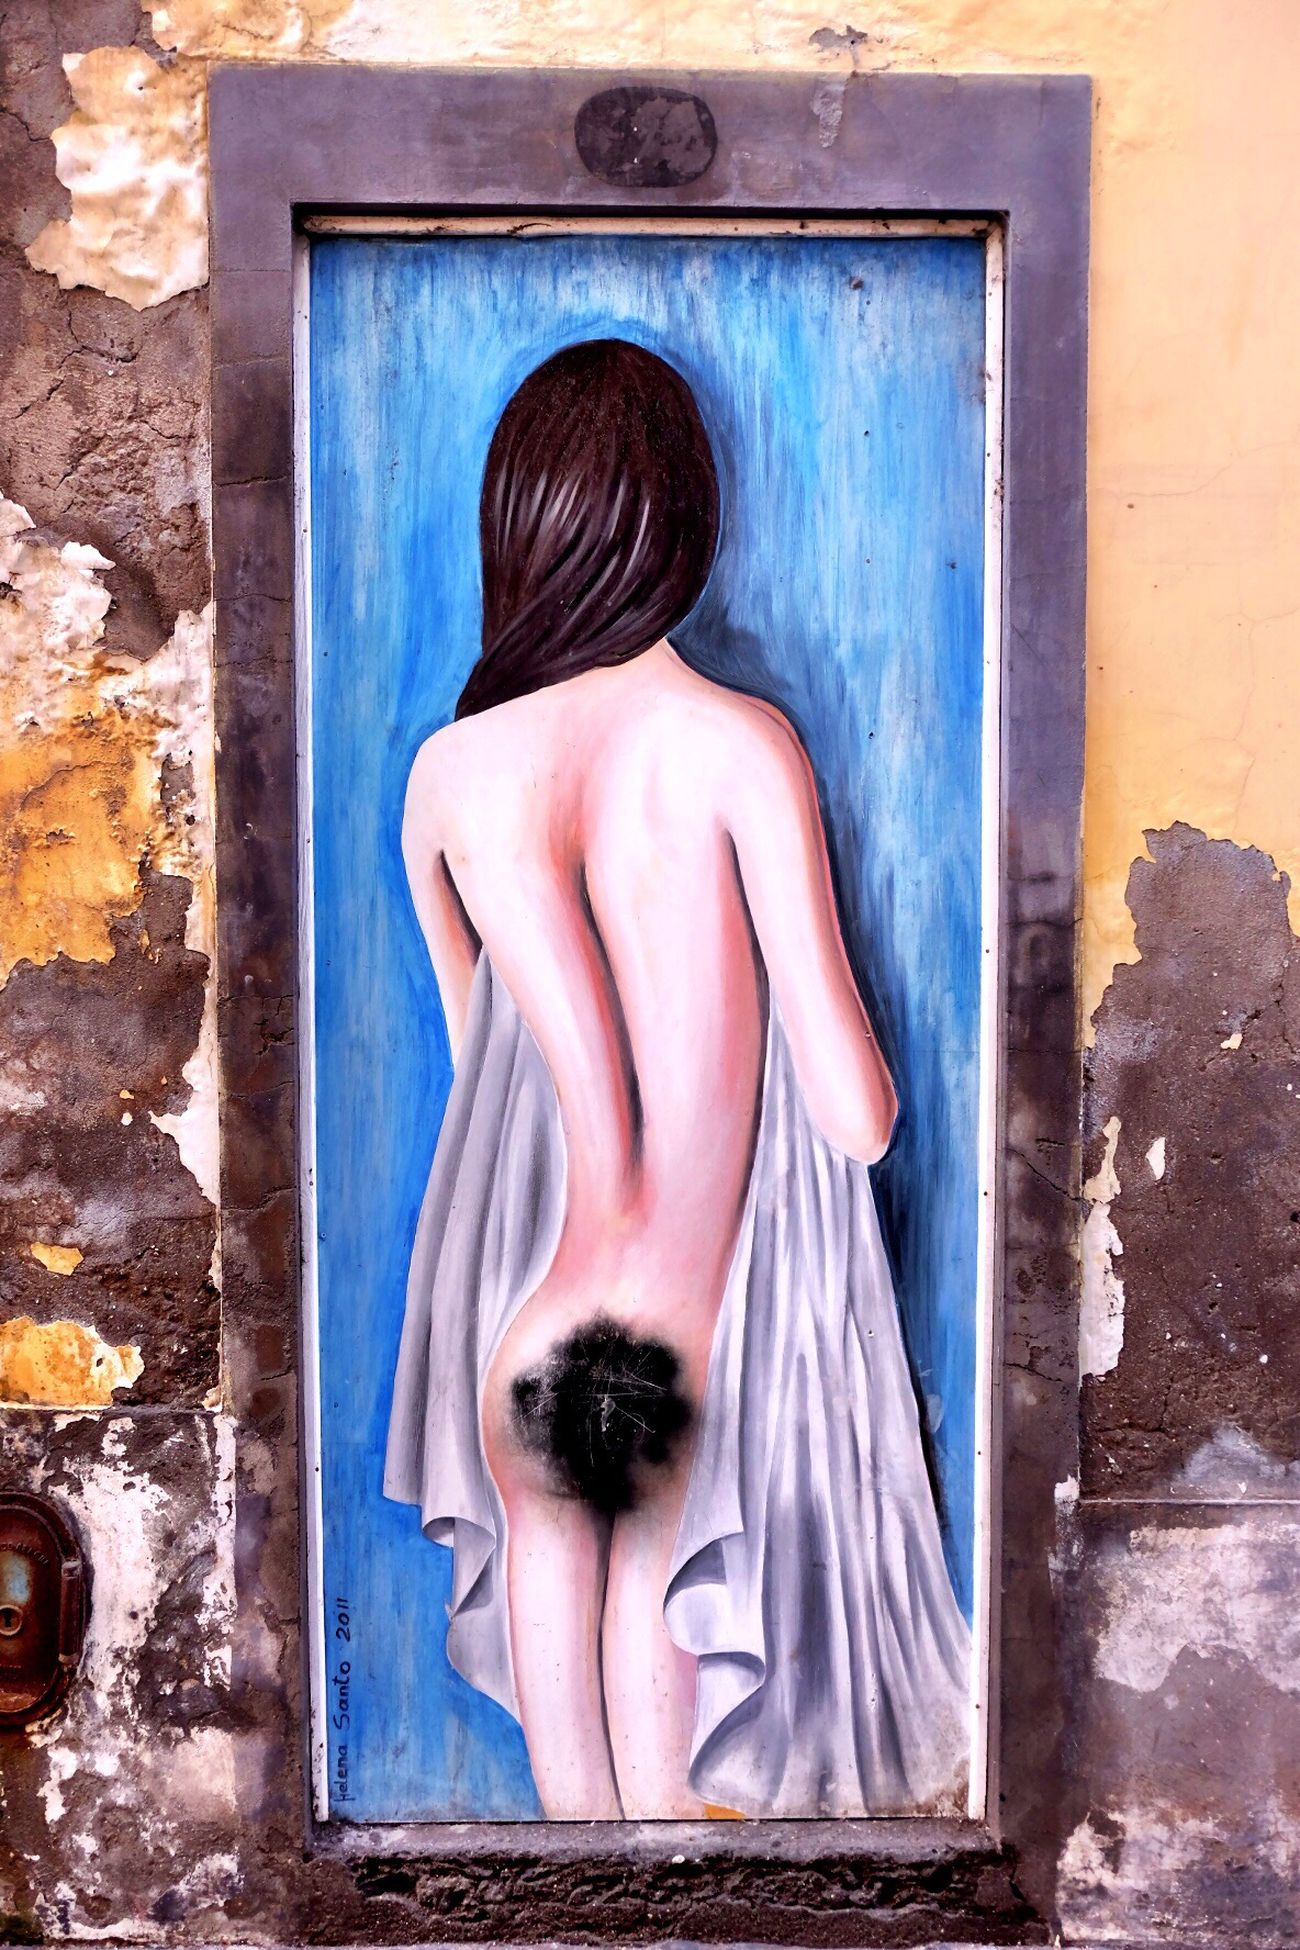 Day Rear View Indoors  No People Close-up Representing Girl Woman Woman Portrait Drawing Drawings Beauty In Nature Door Painting Paintings EyeEm Photo Standing Outdoors Travel Photography Freshness